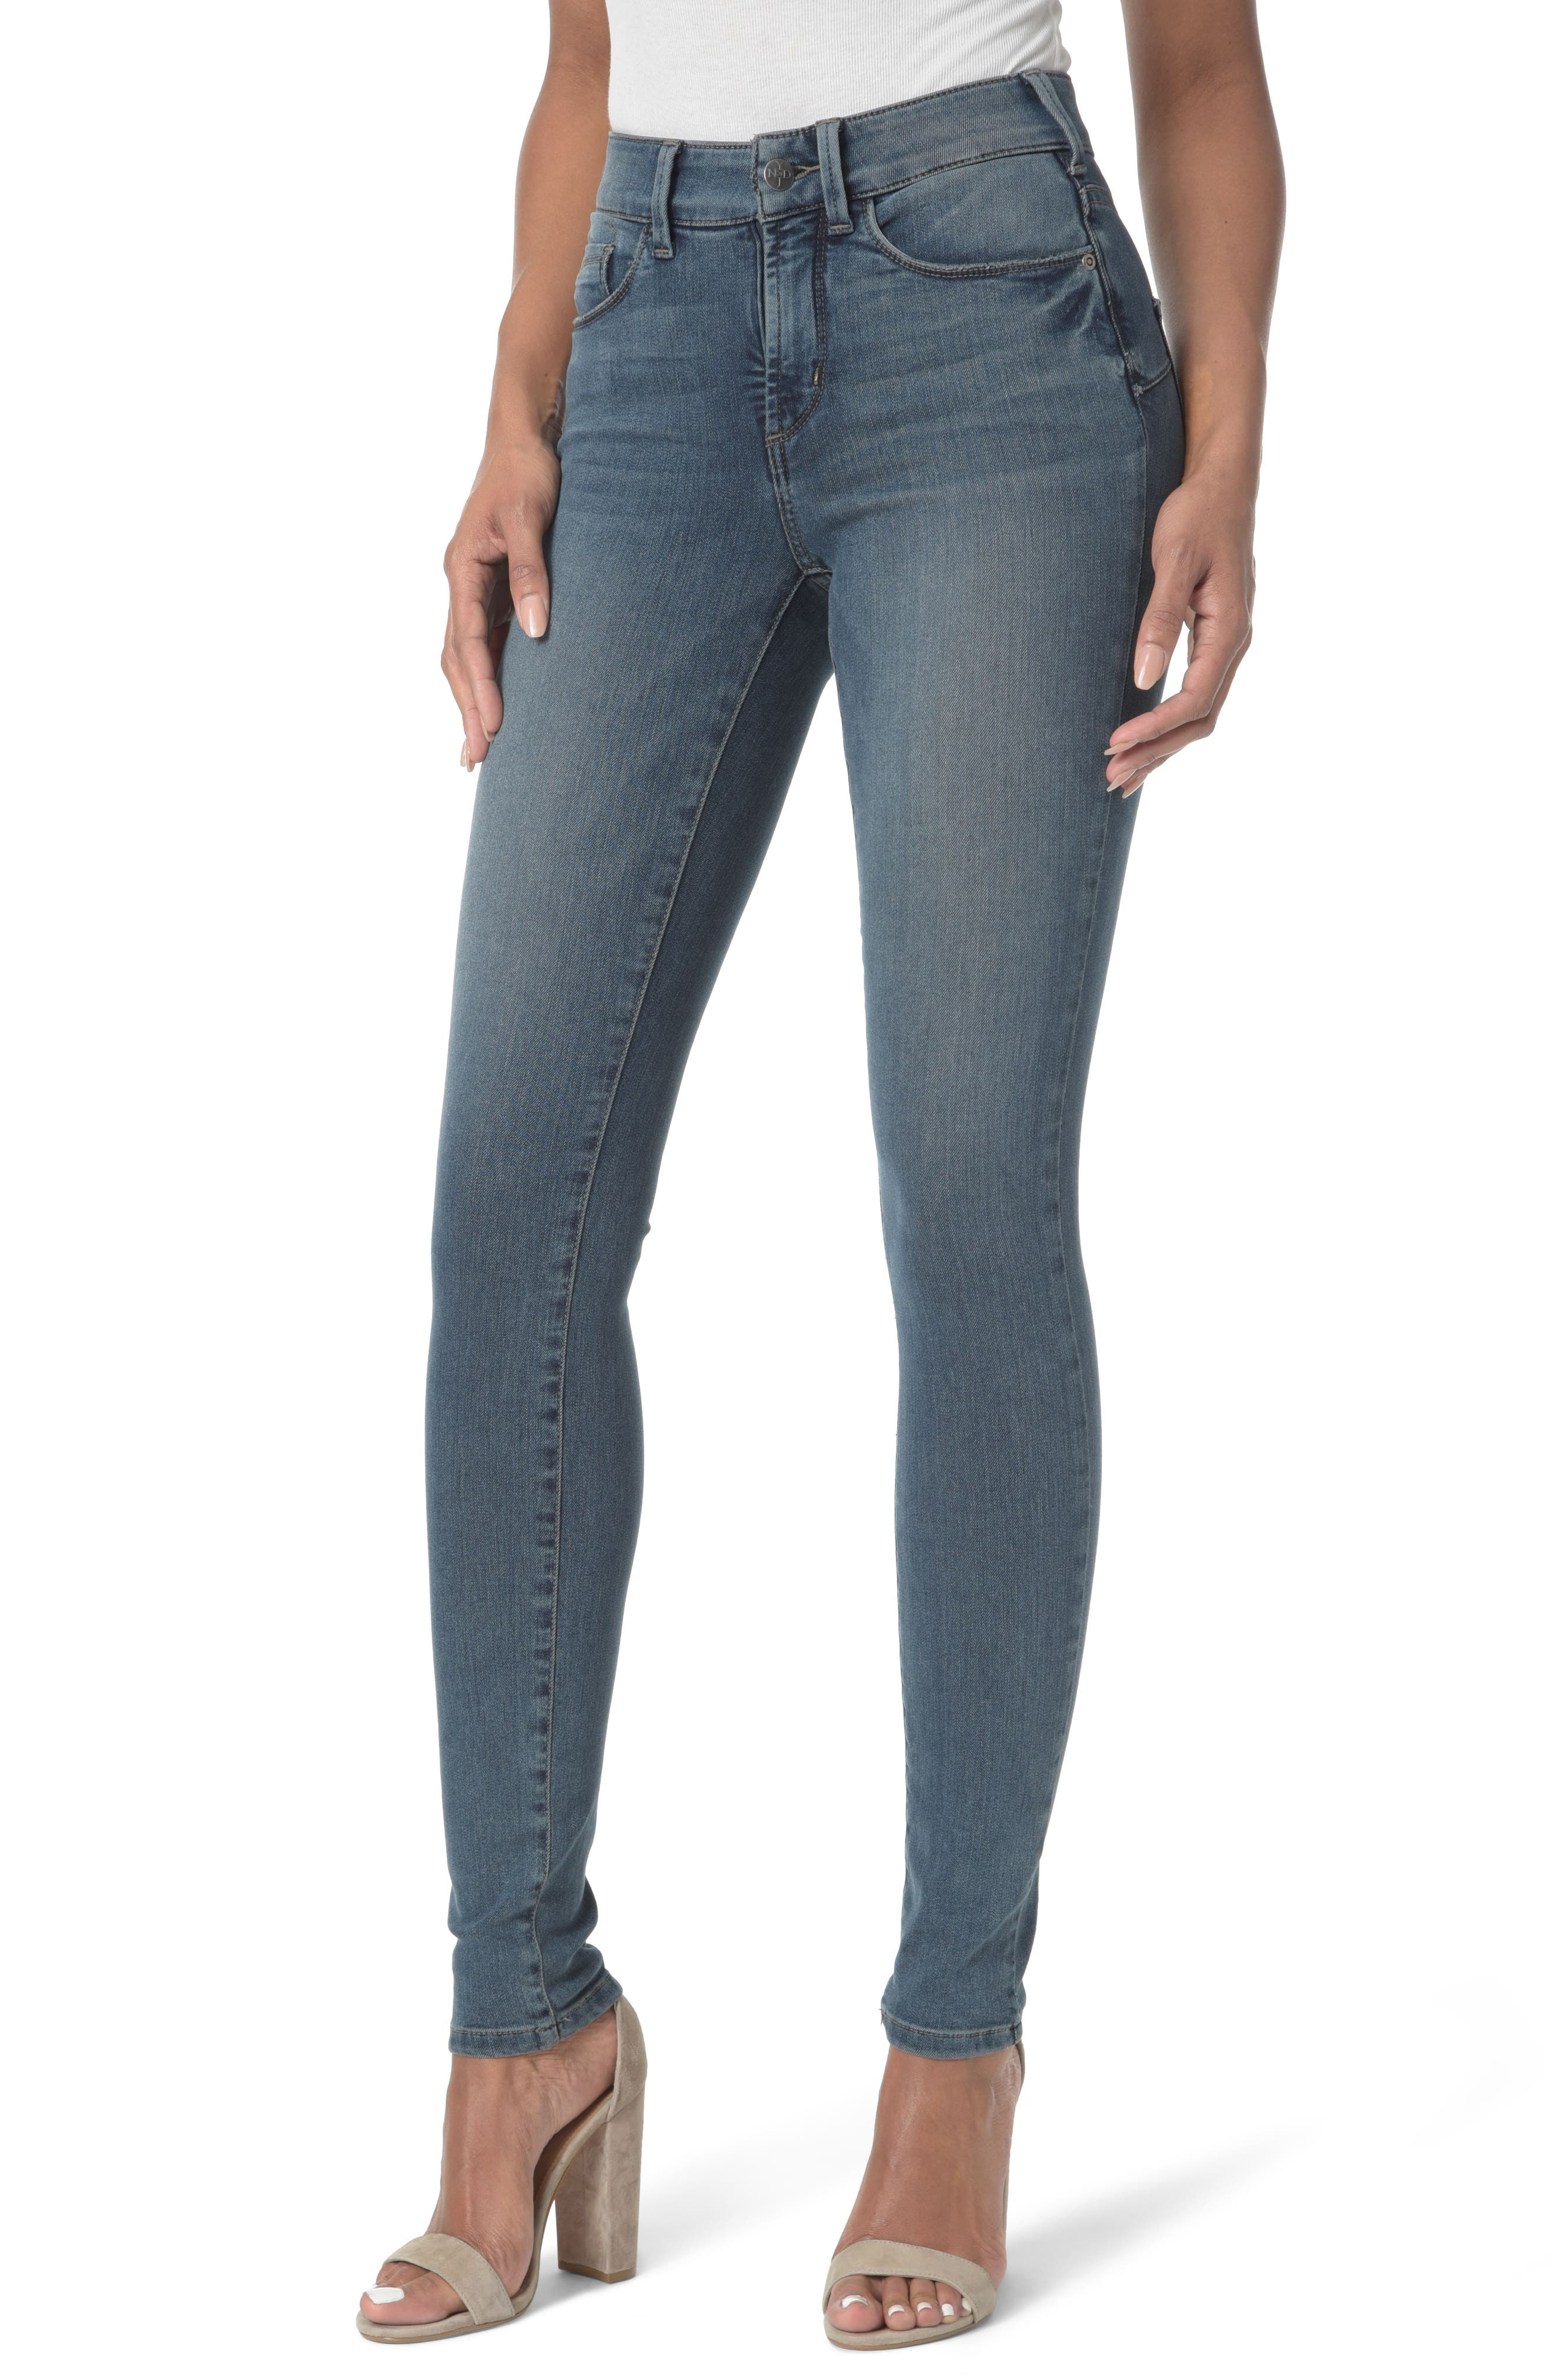 Alina Uplift Stretch Skinny Jeans,                         Main,                         color, 403